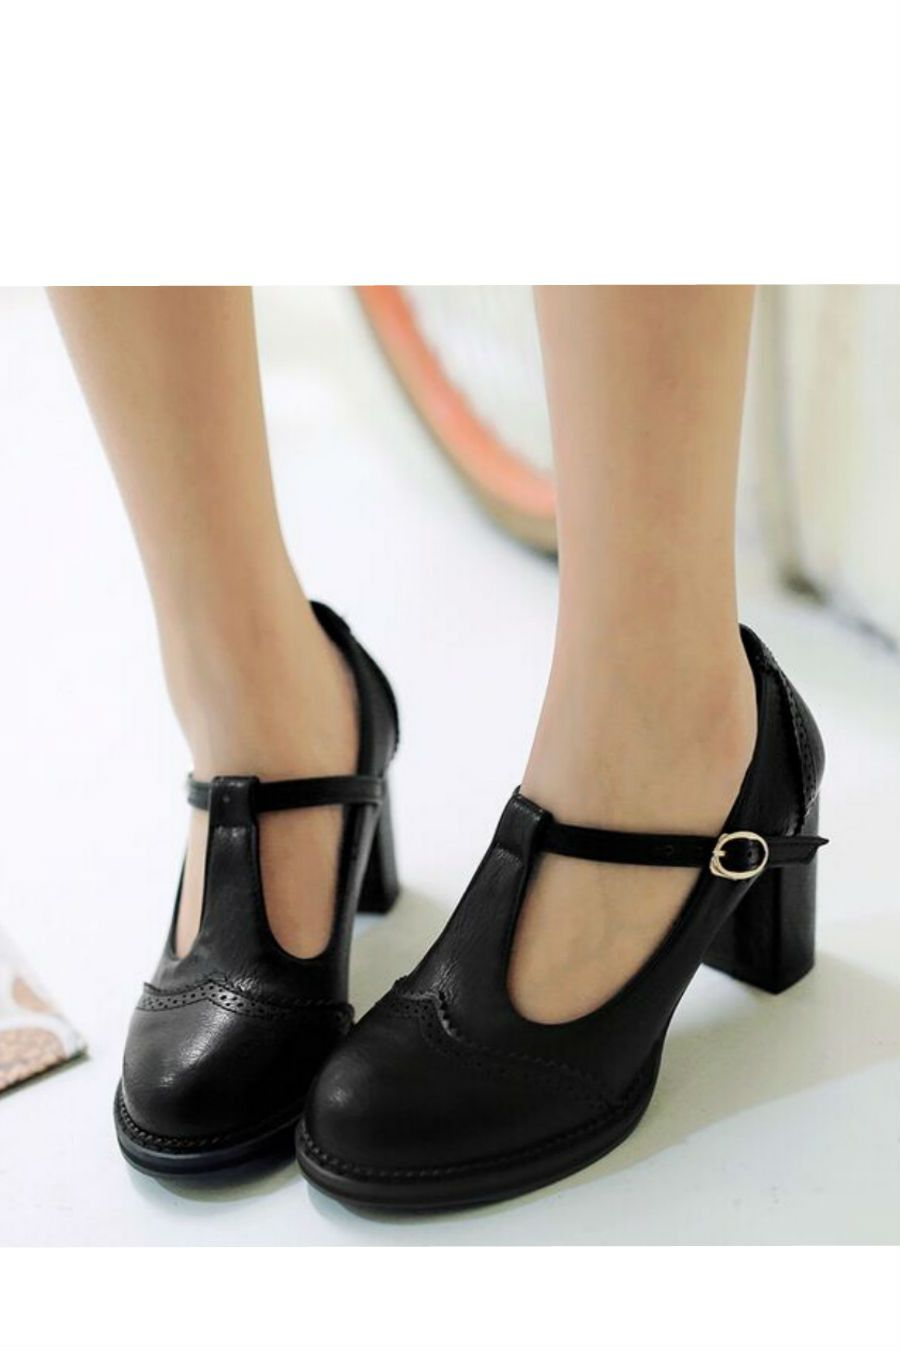 adc9f90ef59 Vintage Black T-Strap High Heel Shoes ~ They come in a small range of sizes  - just 5 to 8